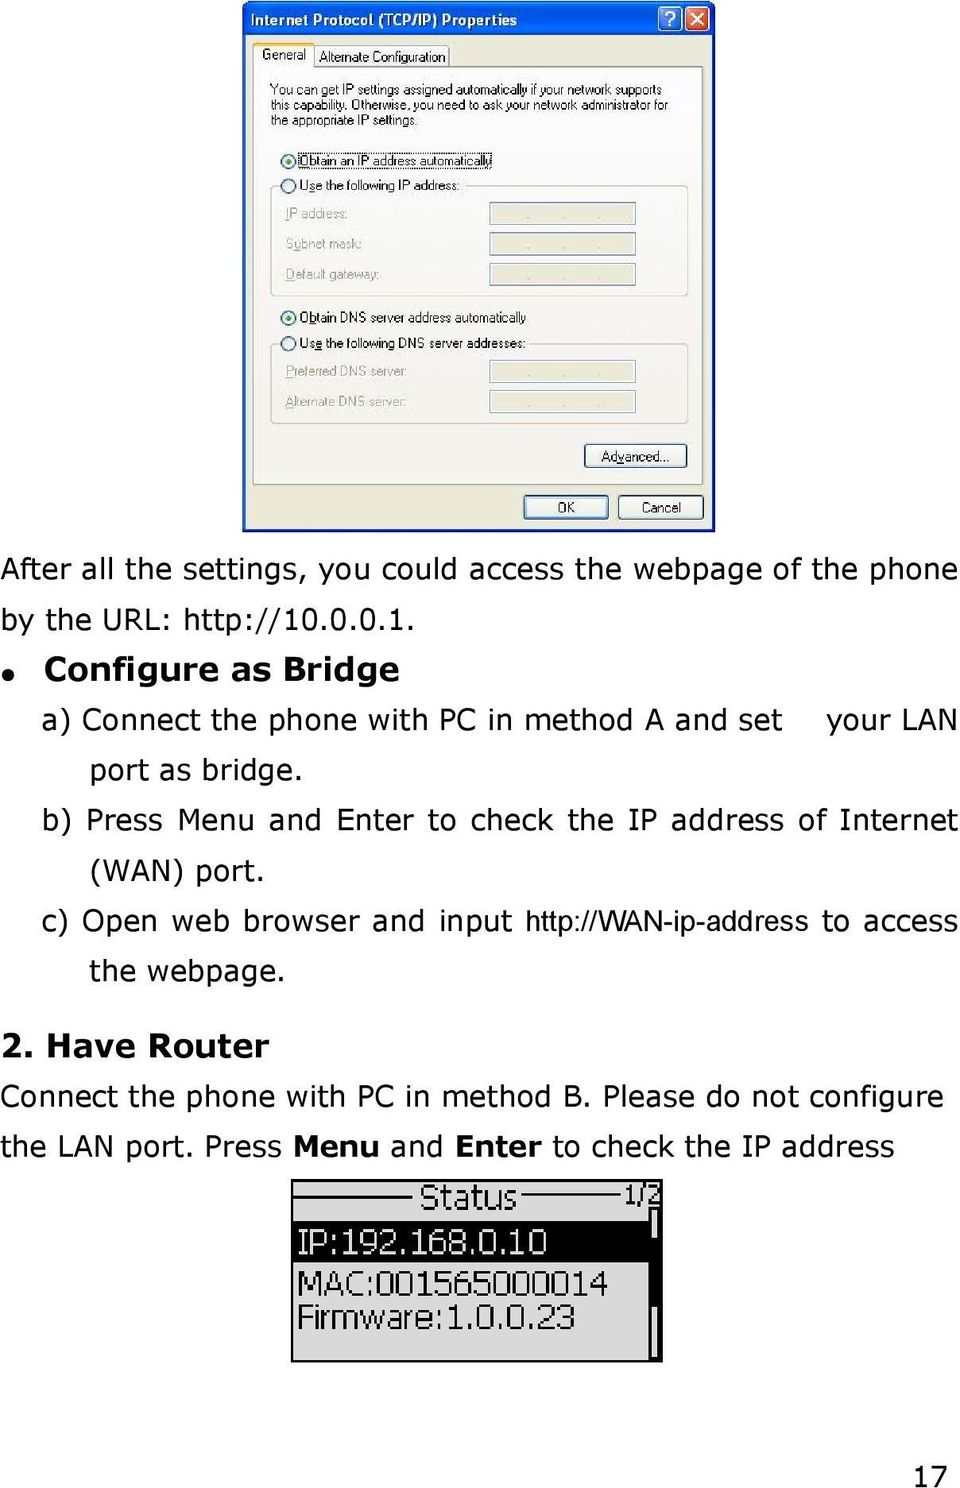 b) Press Menu and Enter to check the IP address of Internet (WAN) port.